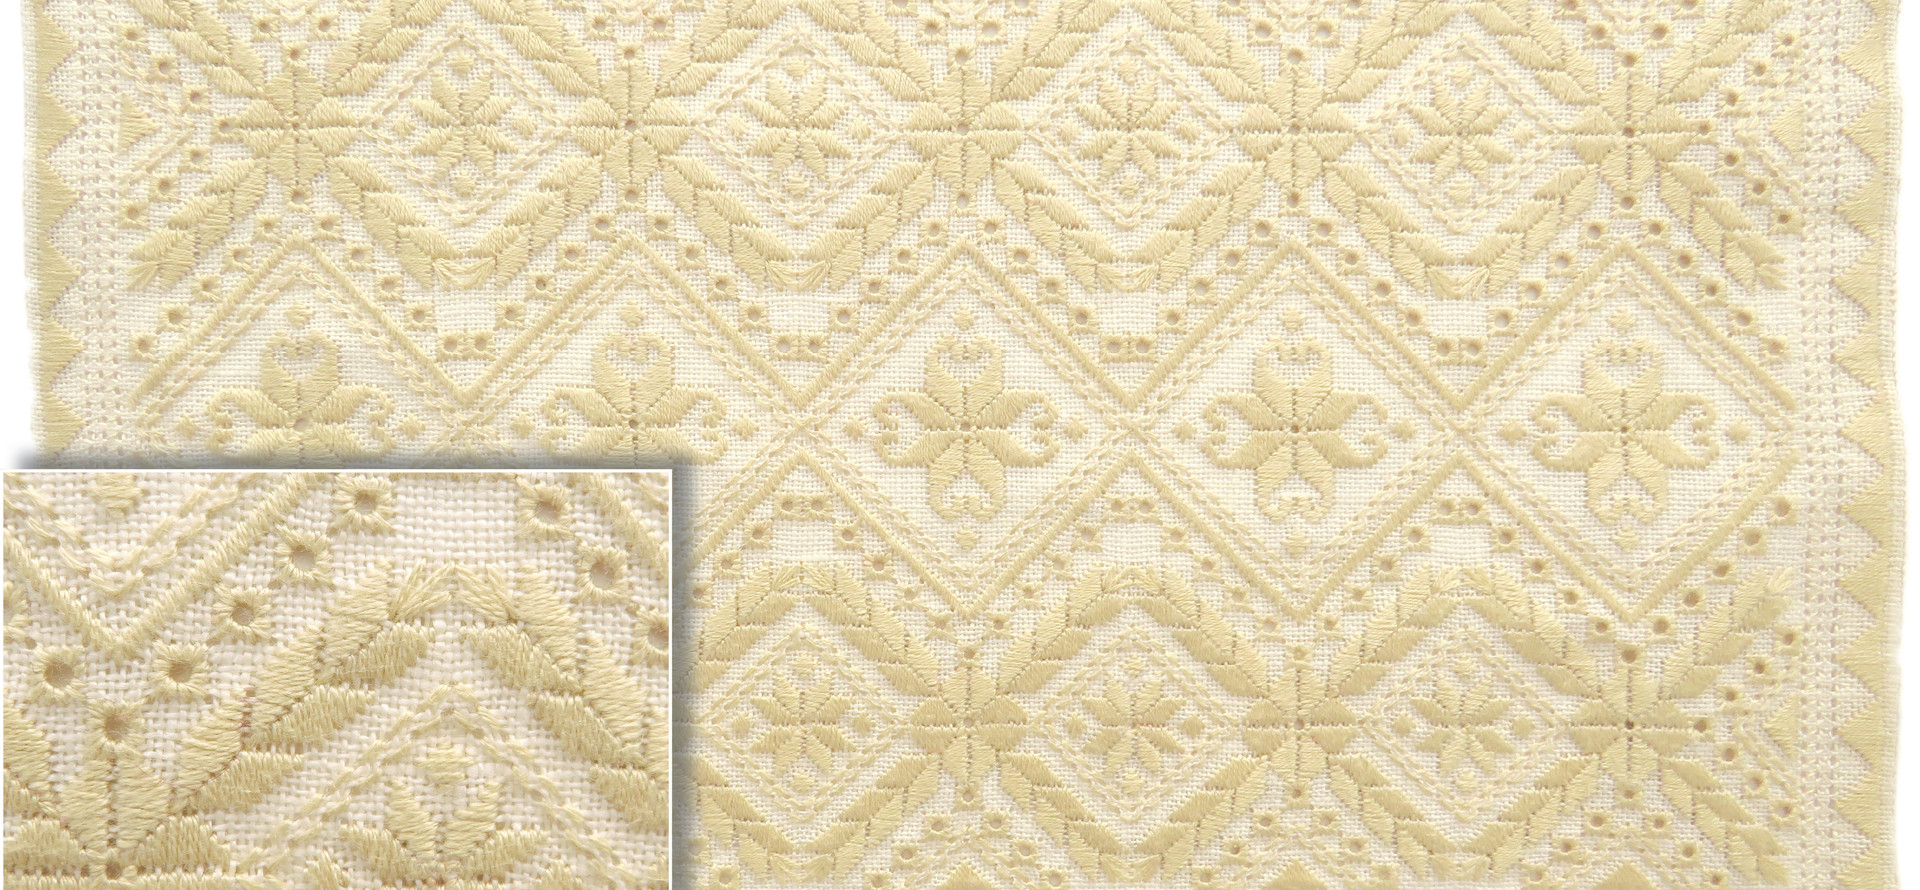 ELEGANT STITCHES by Olwyn Horwood, North Shore Guild.